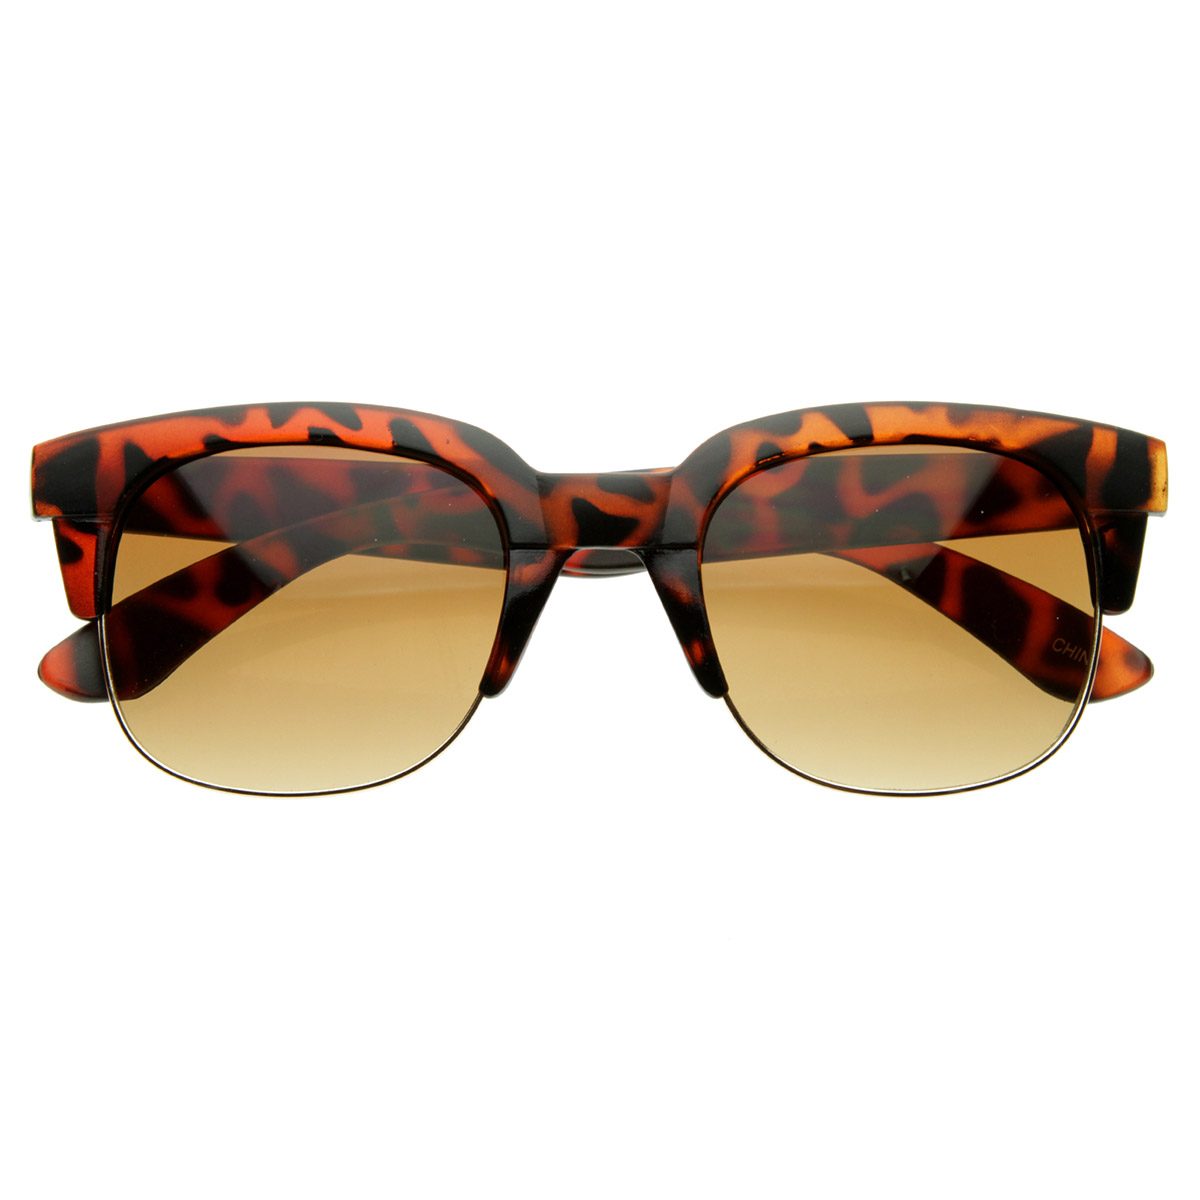 Half Frame Square Glasses : Super Square Modern Fashion Half Frame Retro Horn Rimmed ...